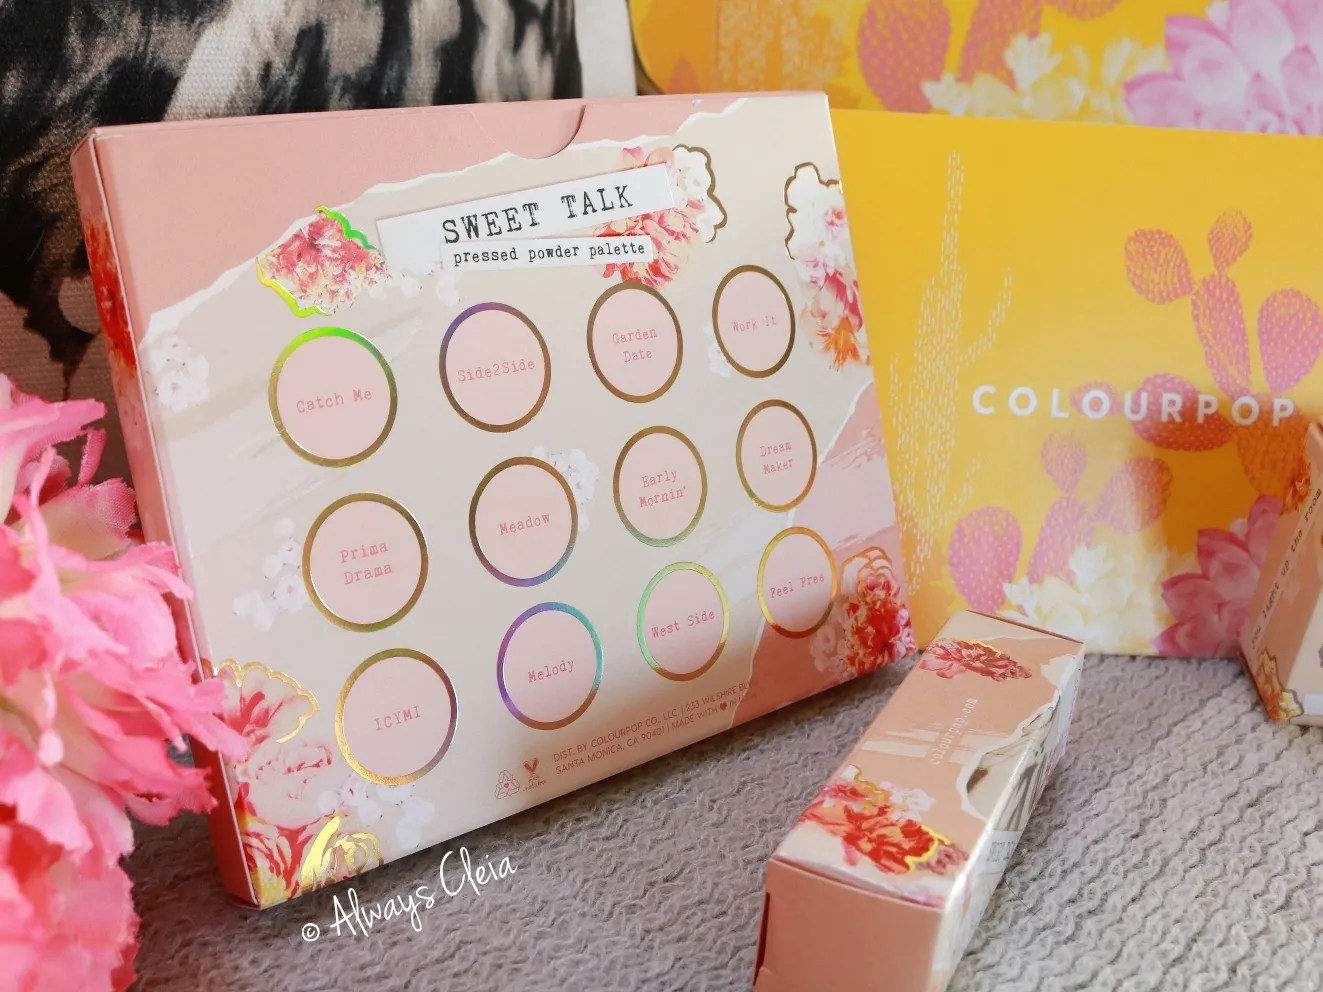 Colourpop Spring Collection | Sweet Talk Palette Packaging